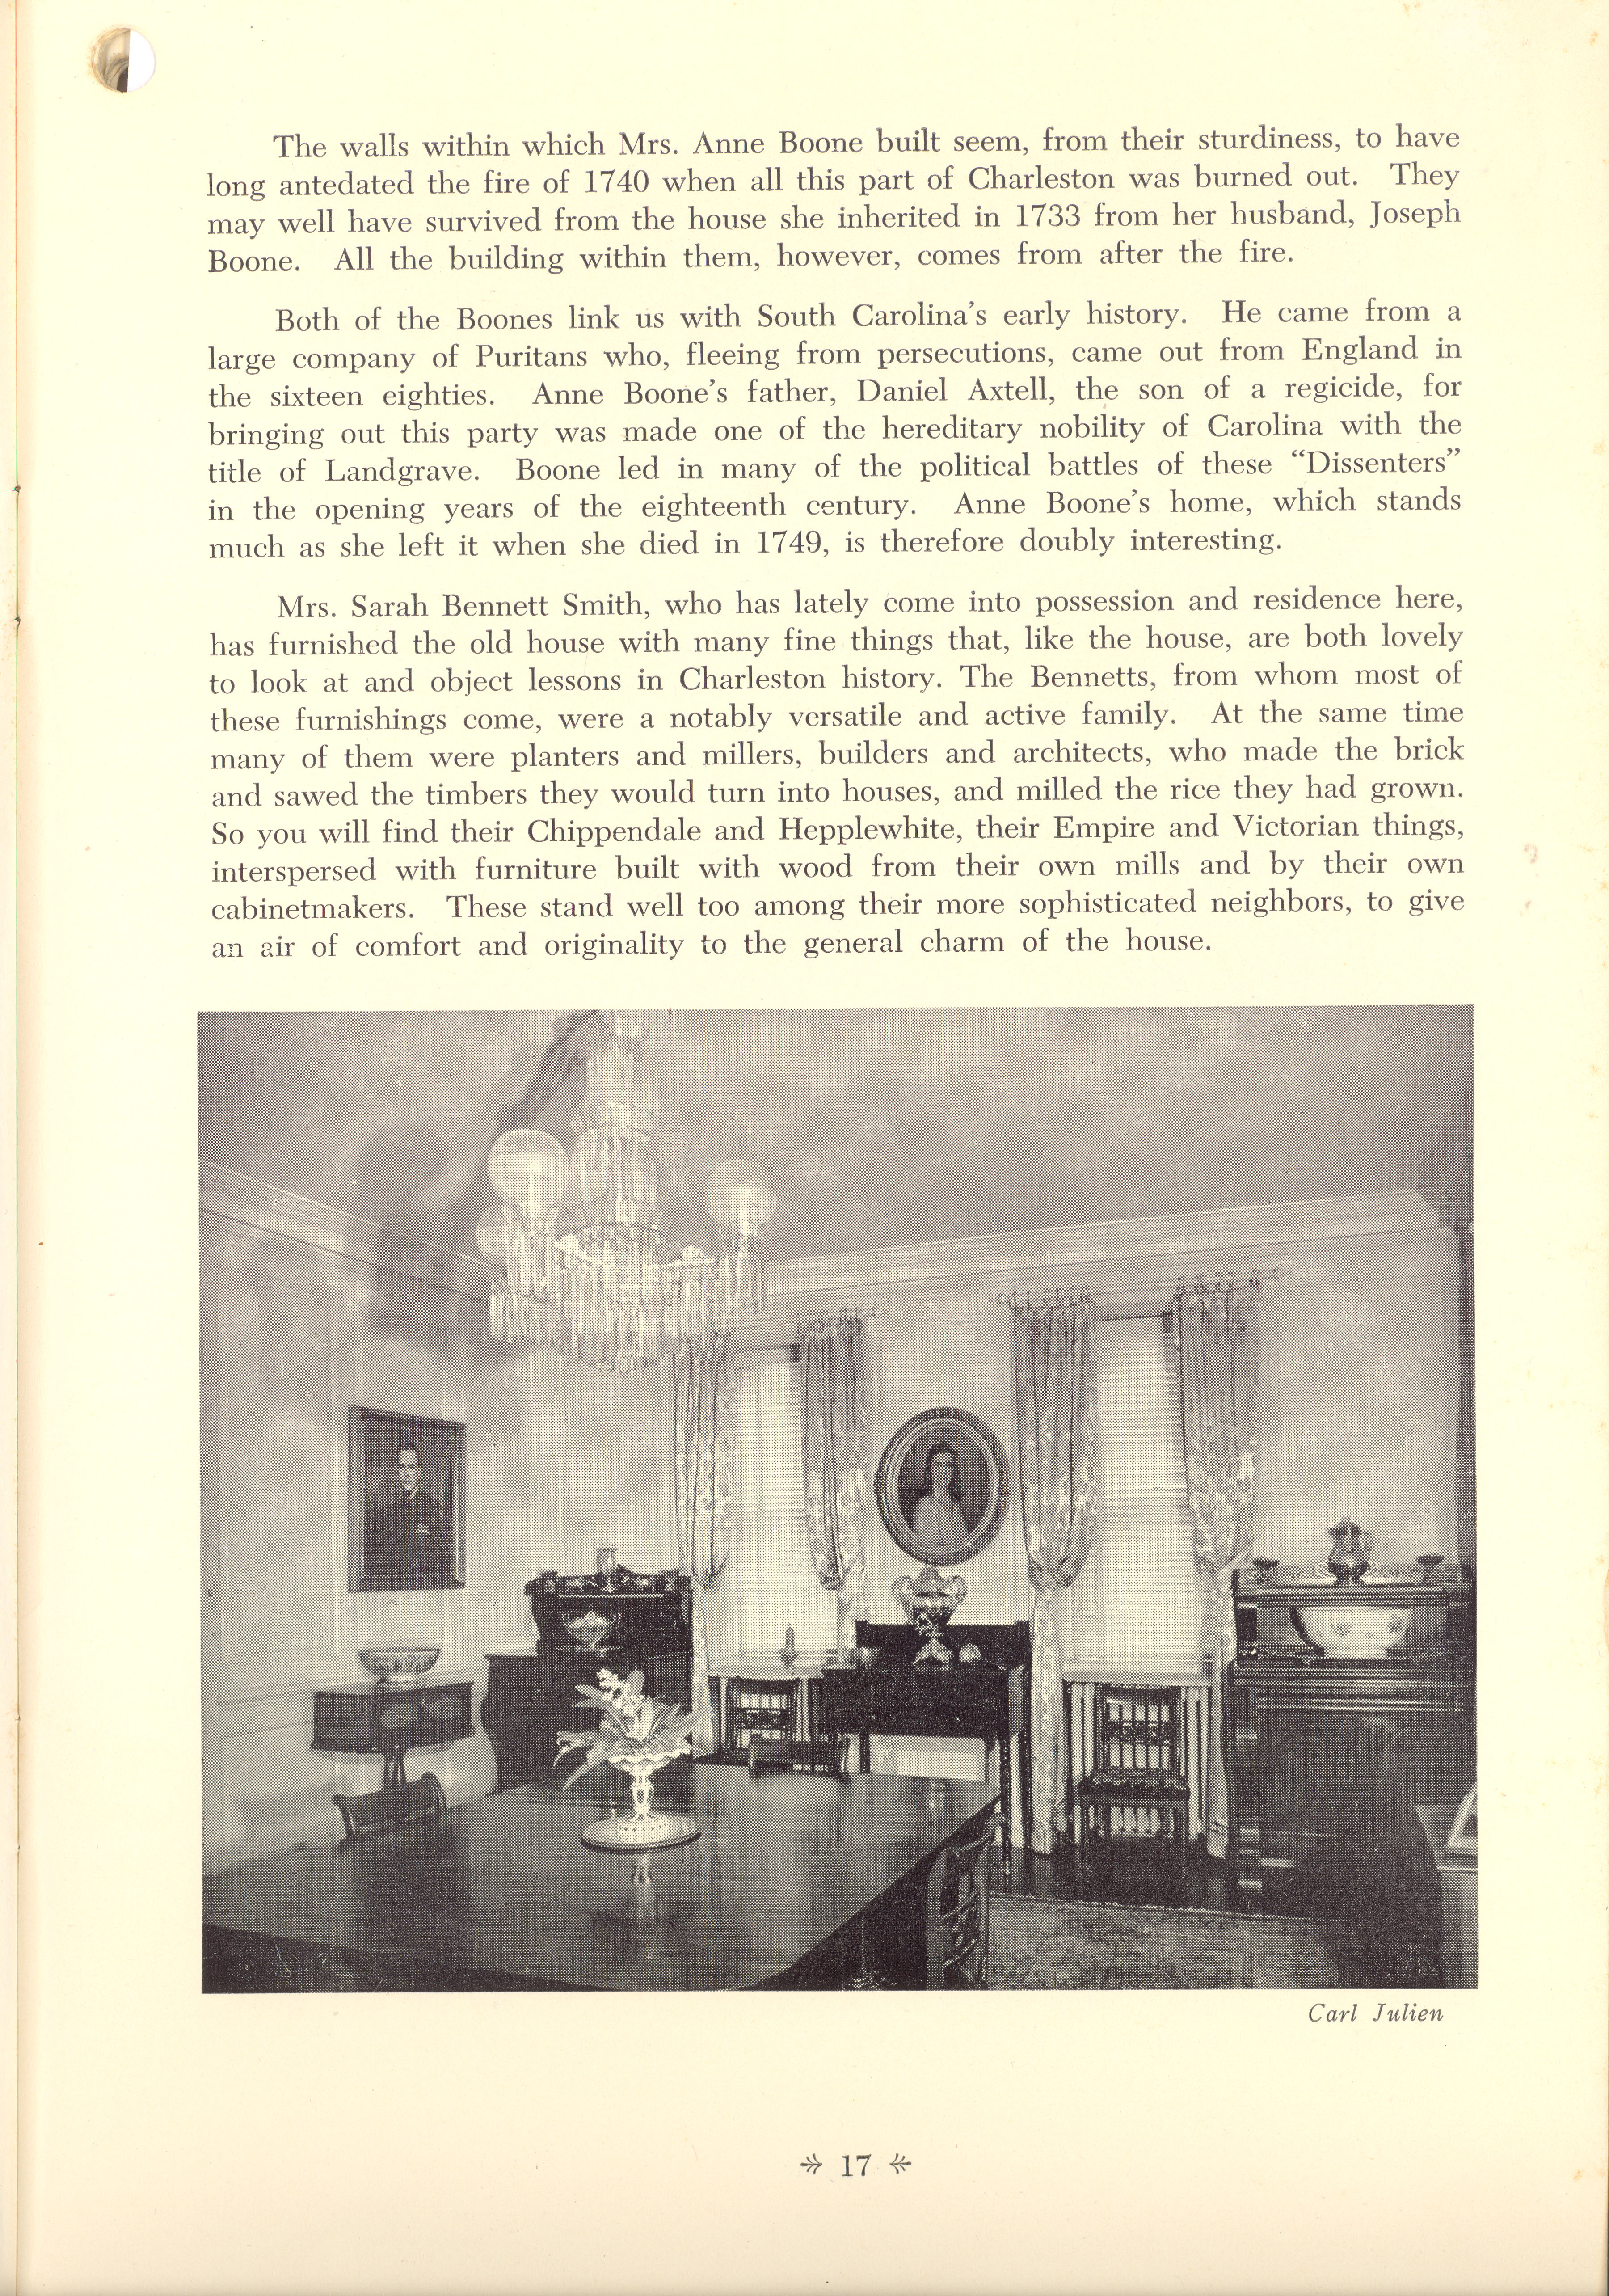 Page 17:  No. 3 - Mrs. Anne Boone's House, 47 East Bay Street, c. 1740, cont'd